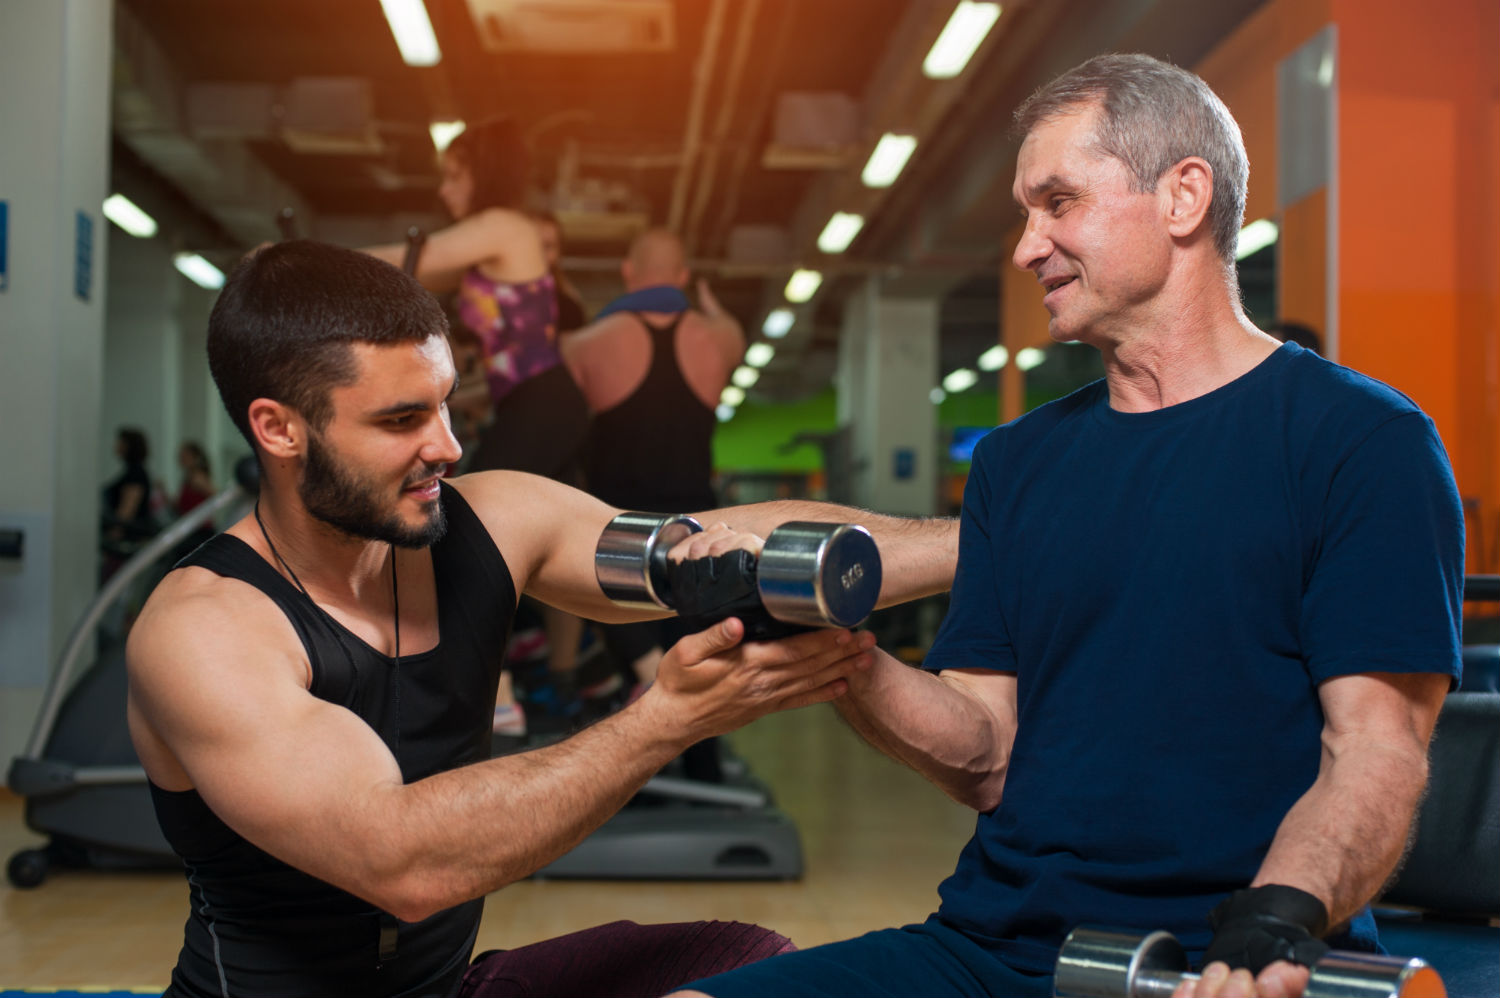 How a Personal Trainer Can Help Create a Healthy and Happy Exercise Routine